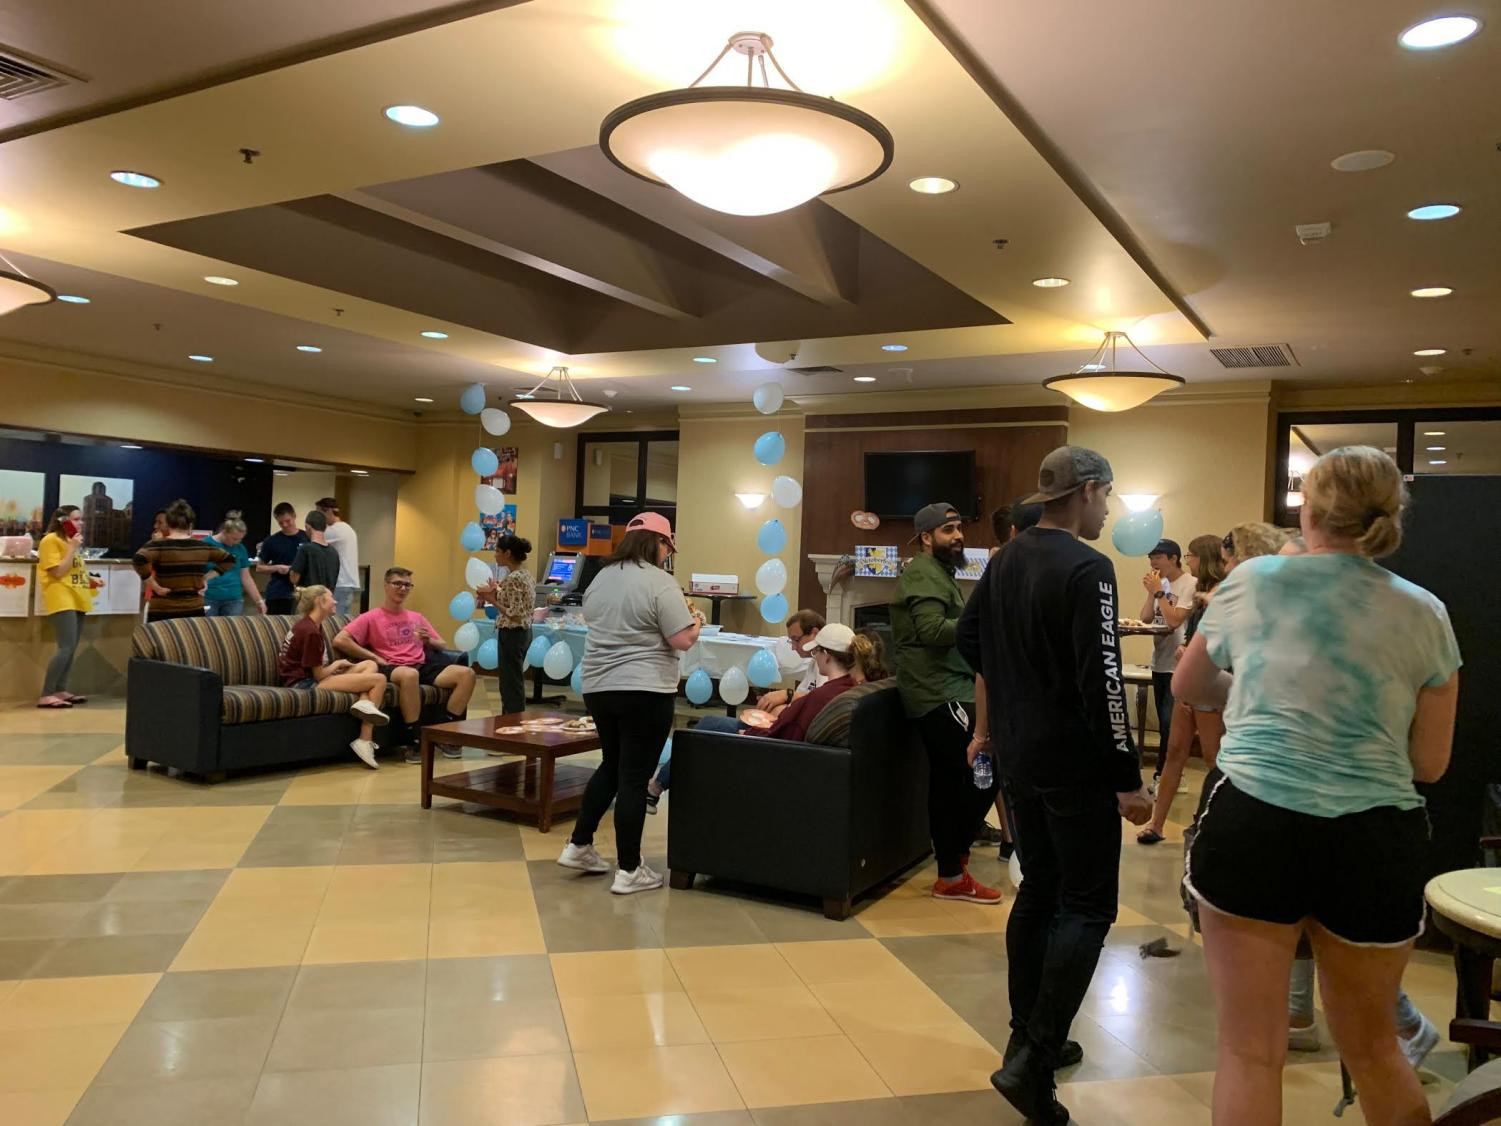 Students gathered in the Yorktown lobby to mingle and learn about German culture. Photo credit: Kassandra Boyd